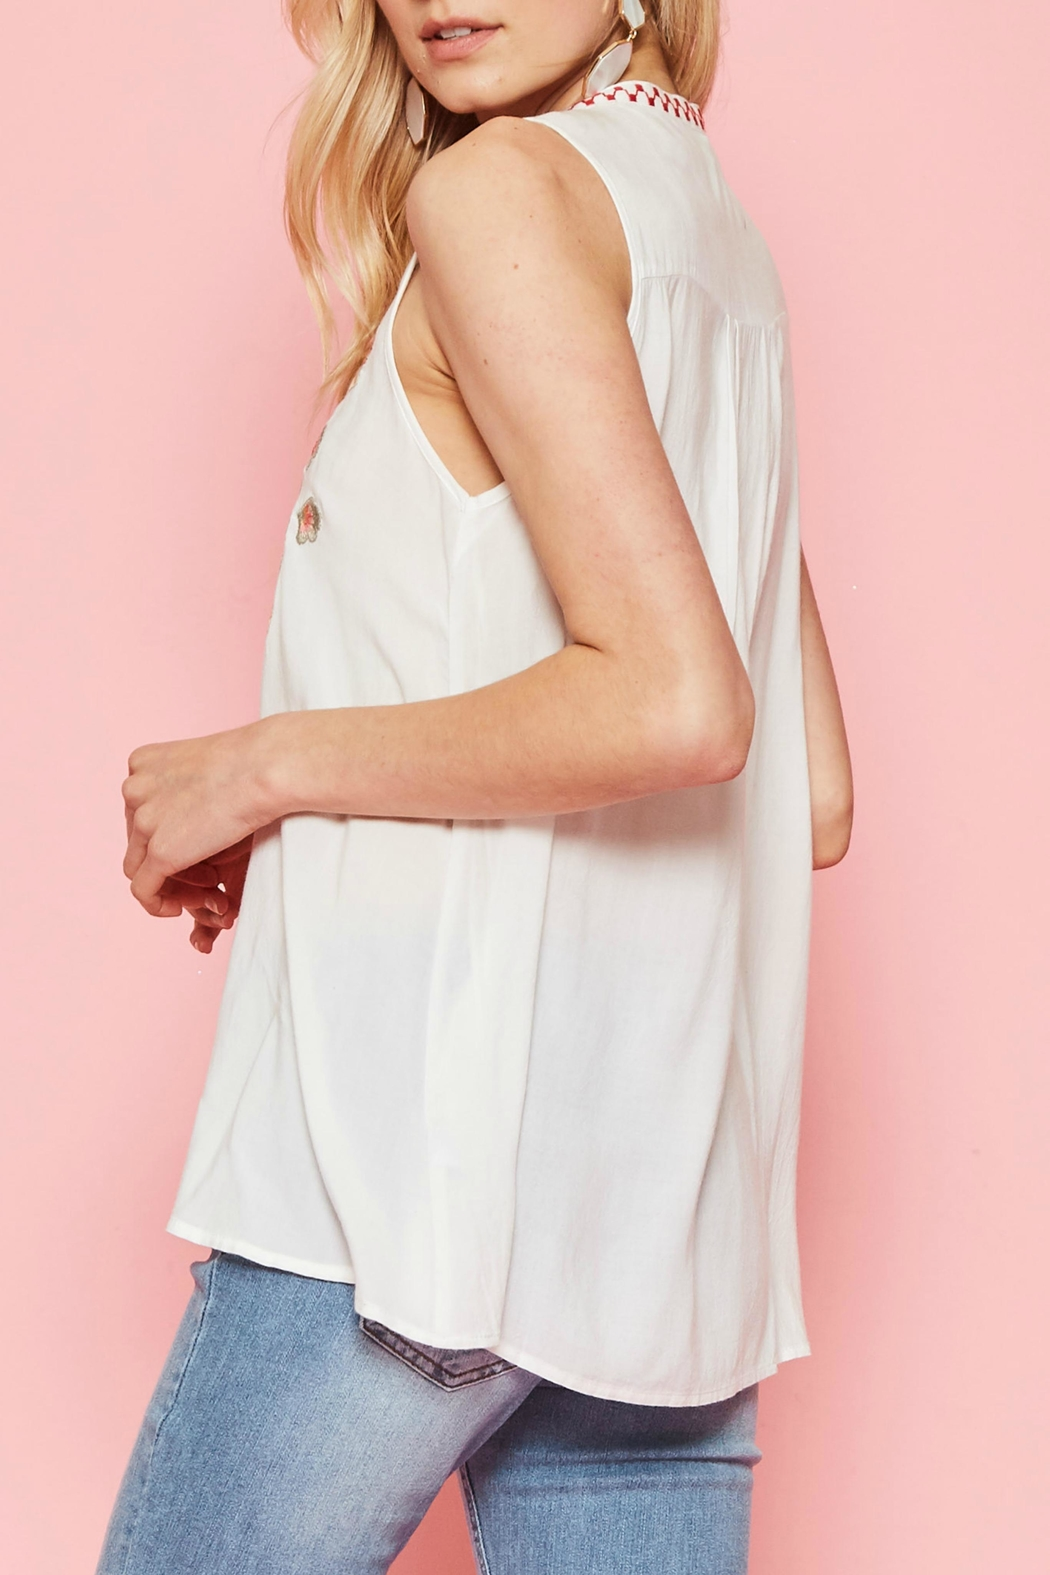 Andree by Unit Emboidered Sleeveless Top - Front Full Image